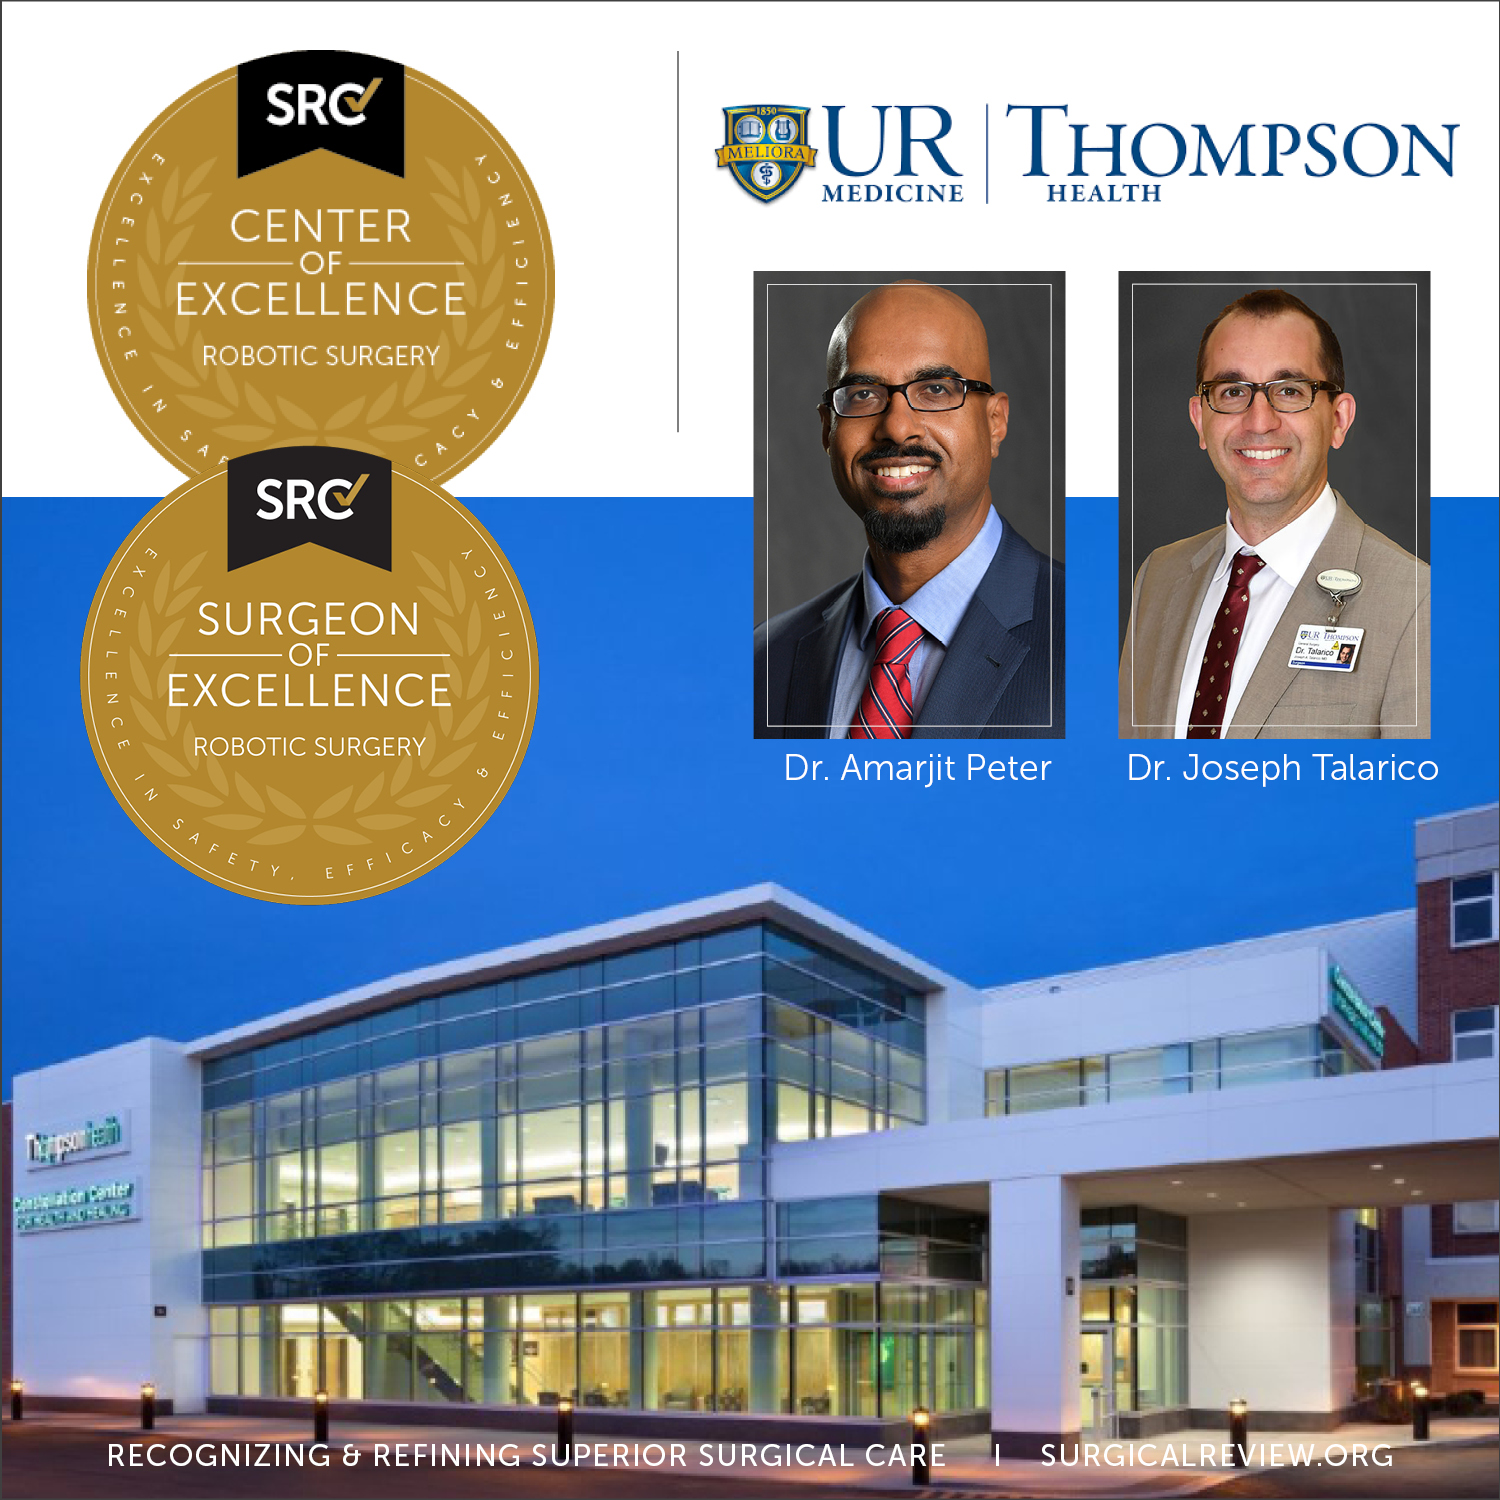 SRC accredited Center of Excellence in Robotic Surgery